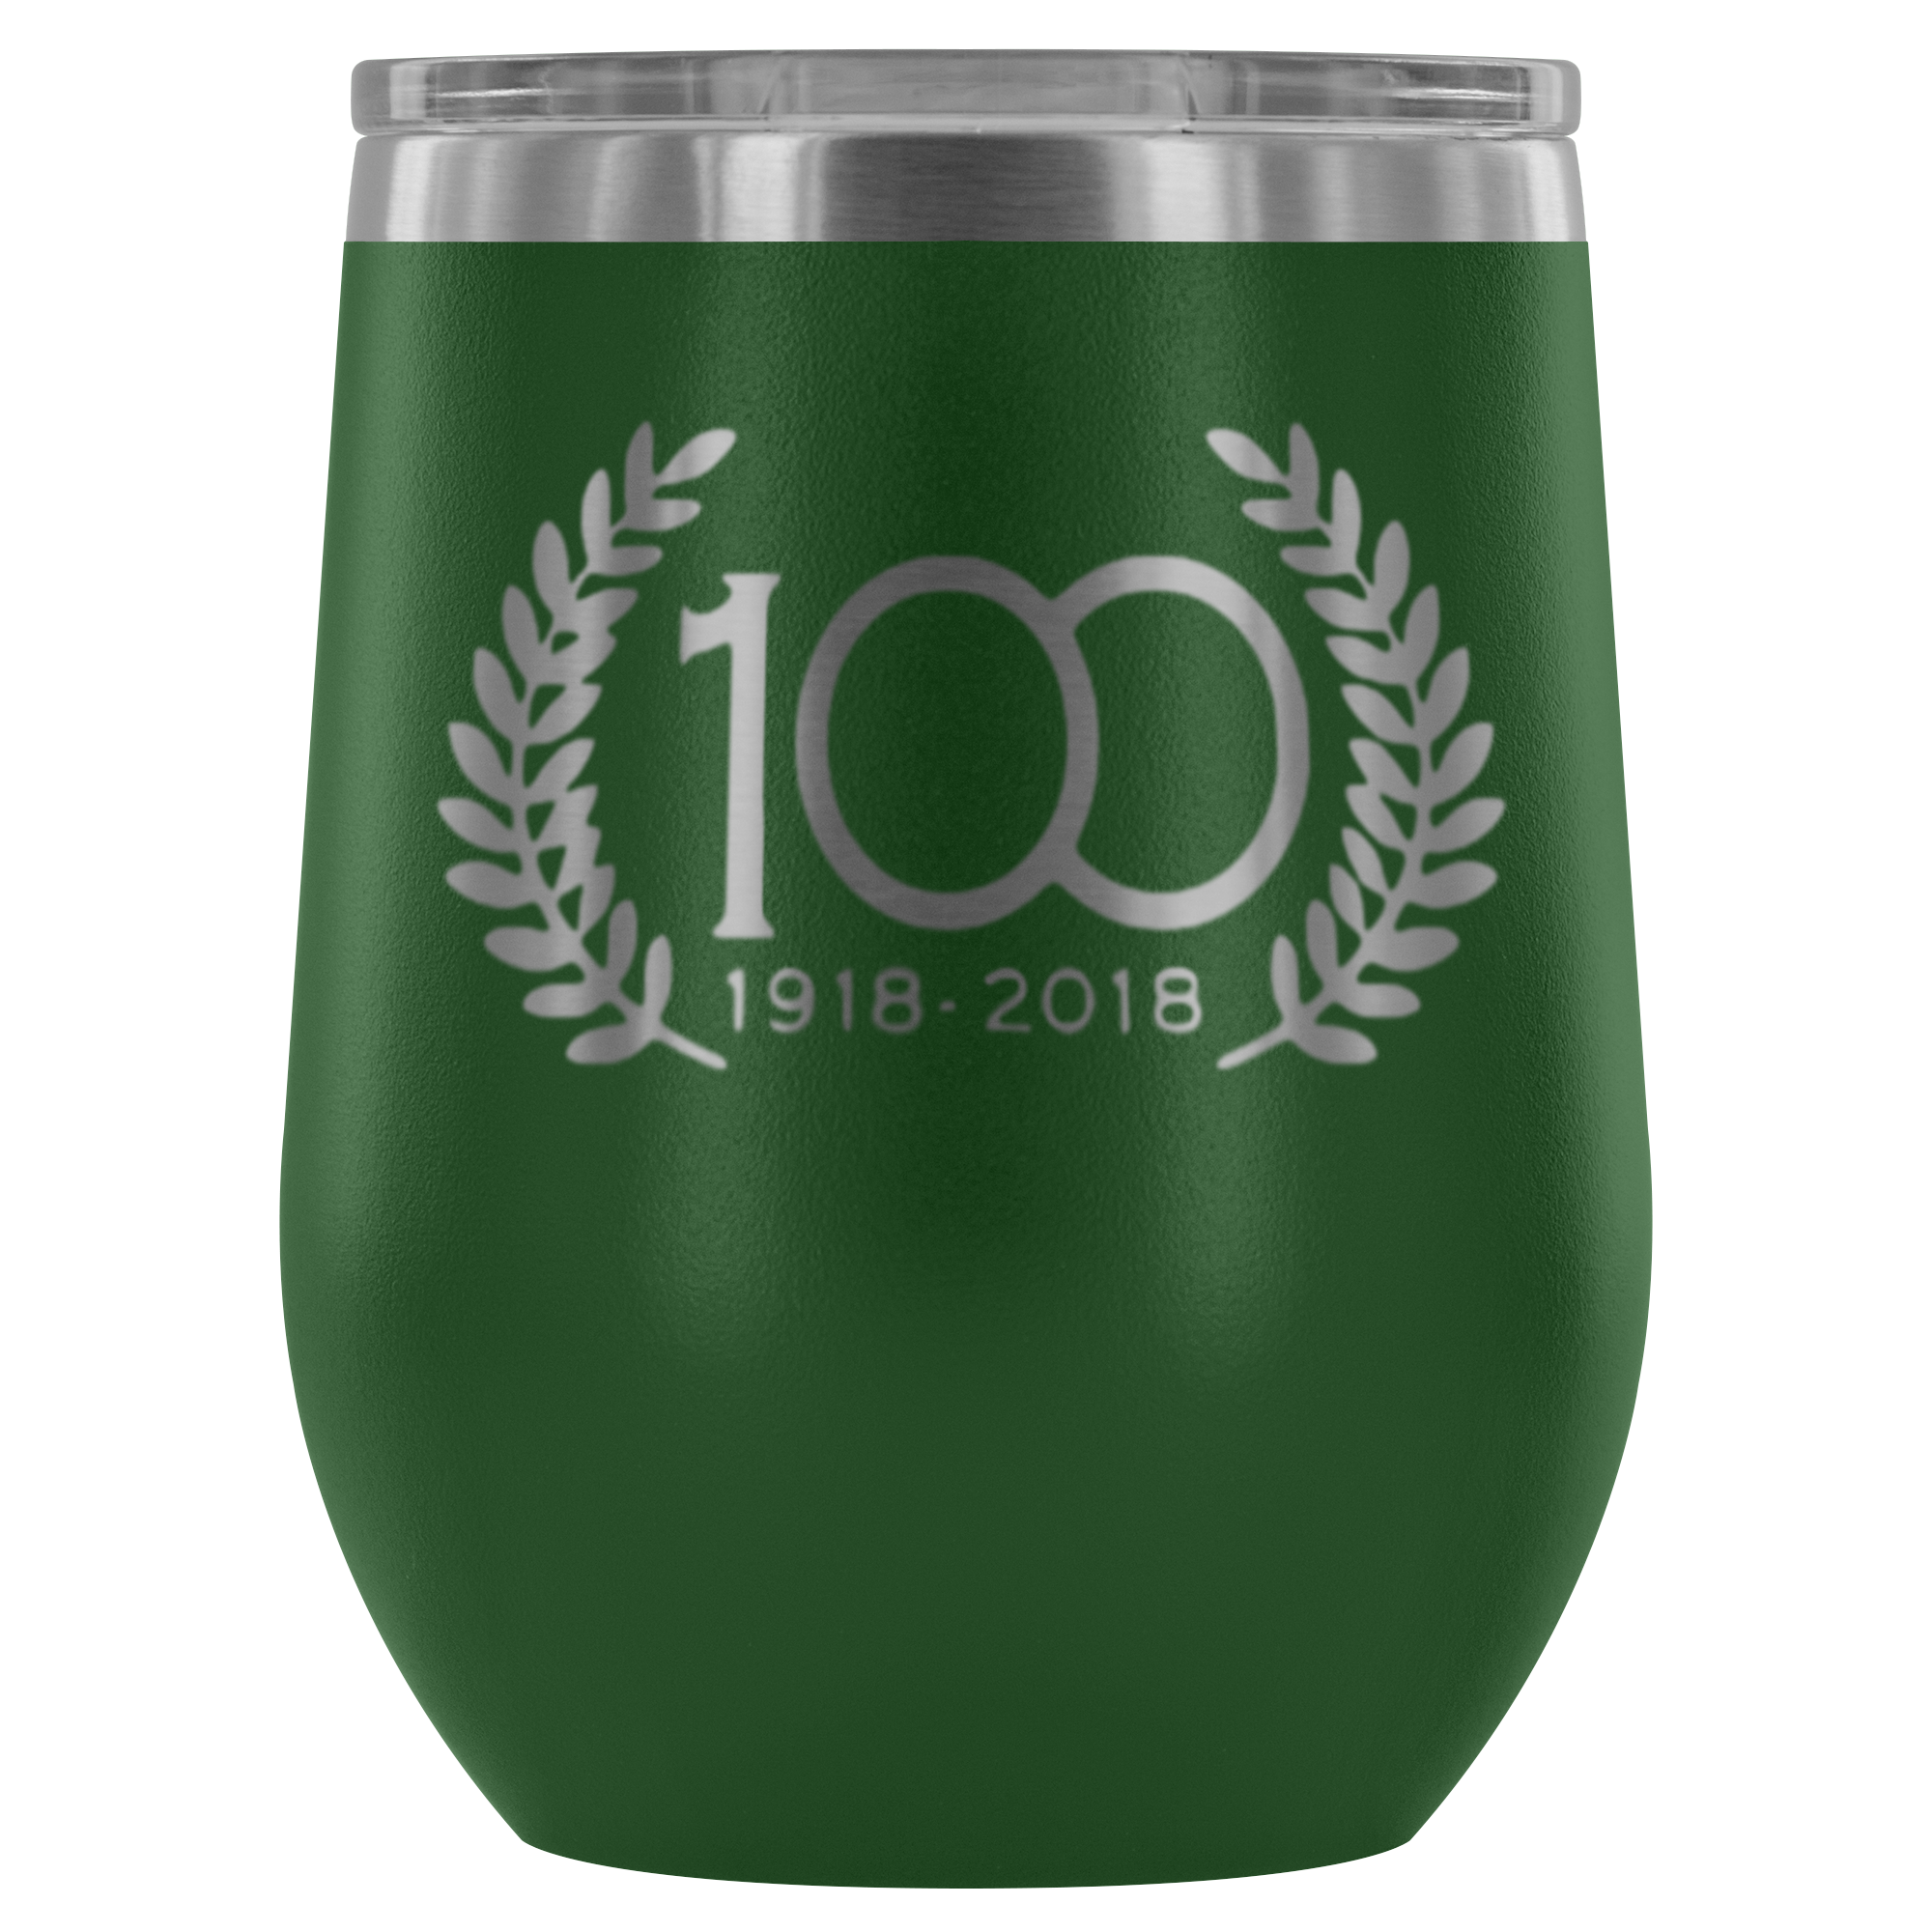 12oz. Stemless Wine Tumblers (100th Anniversary)